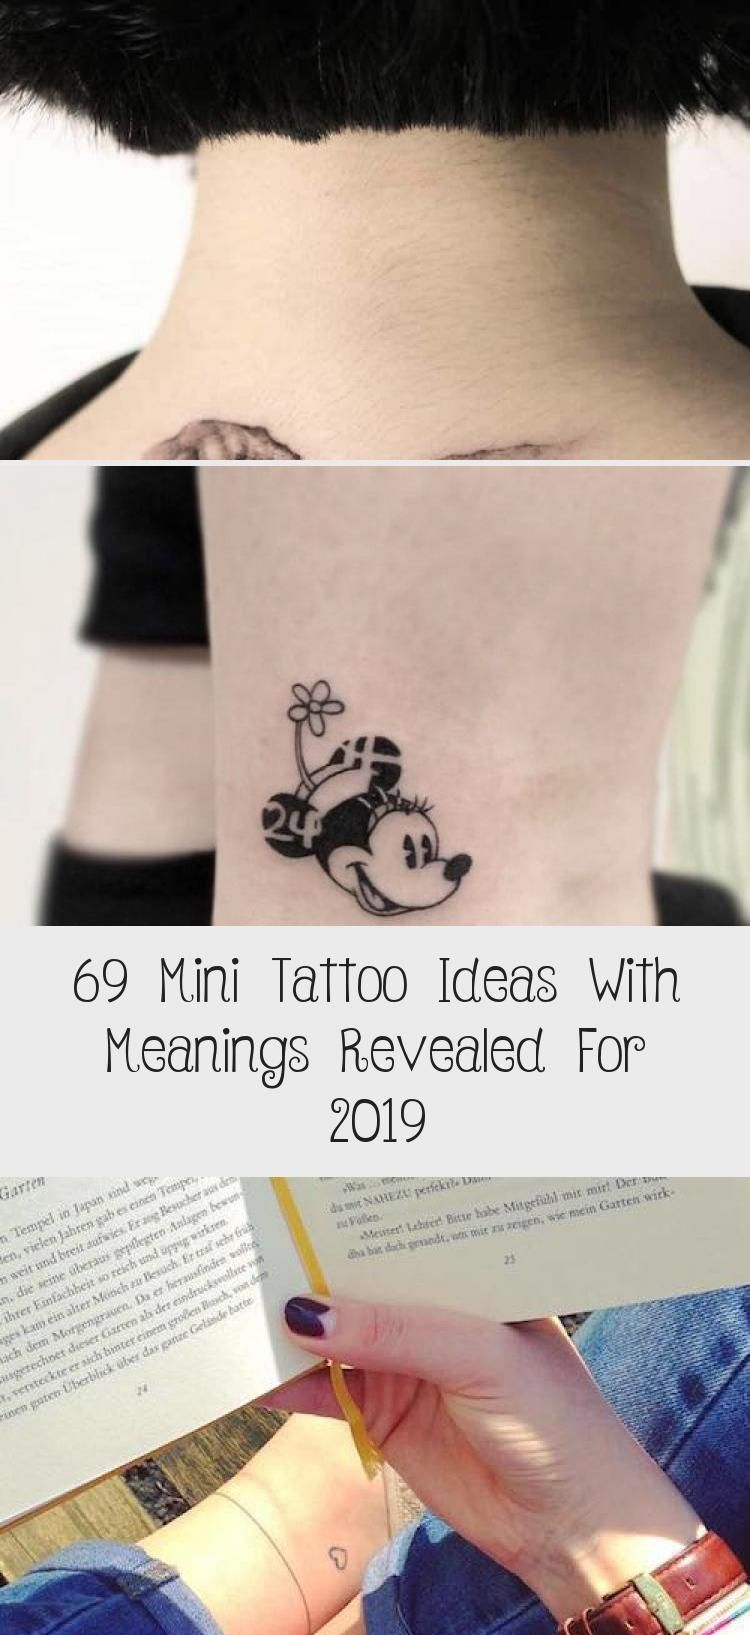 69 Mini Tattoo Ideas With Meanings Revealed for 2018 #ArtTattooMonet #BlackArtTa... -  69 Mini Tattoo Ideas With Meanings Revealed for 2018 #ArtTattooMonet #BlackArtTattoo #ModernArtTatt - #arttattoomonet #blackartta #ideas #meanings #Mini #revealed #tattoo #tattooideascollarbone #tattooideasformen #tattooideassmall #tattooideasunique